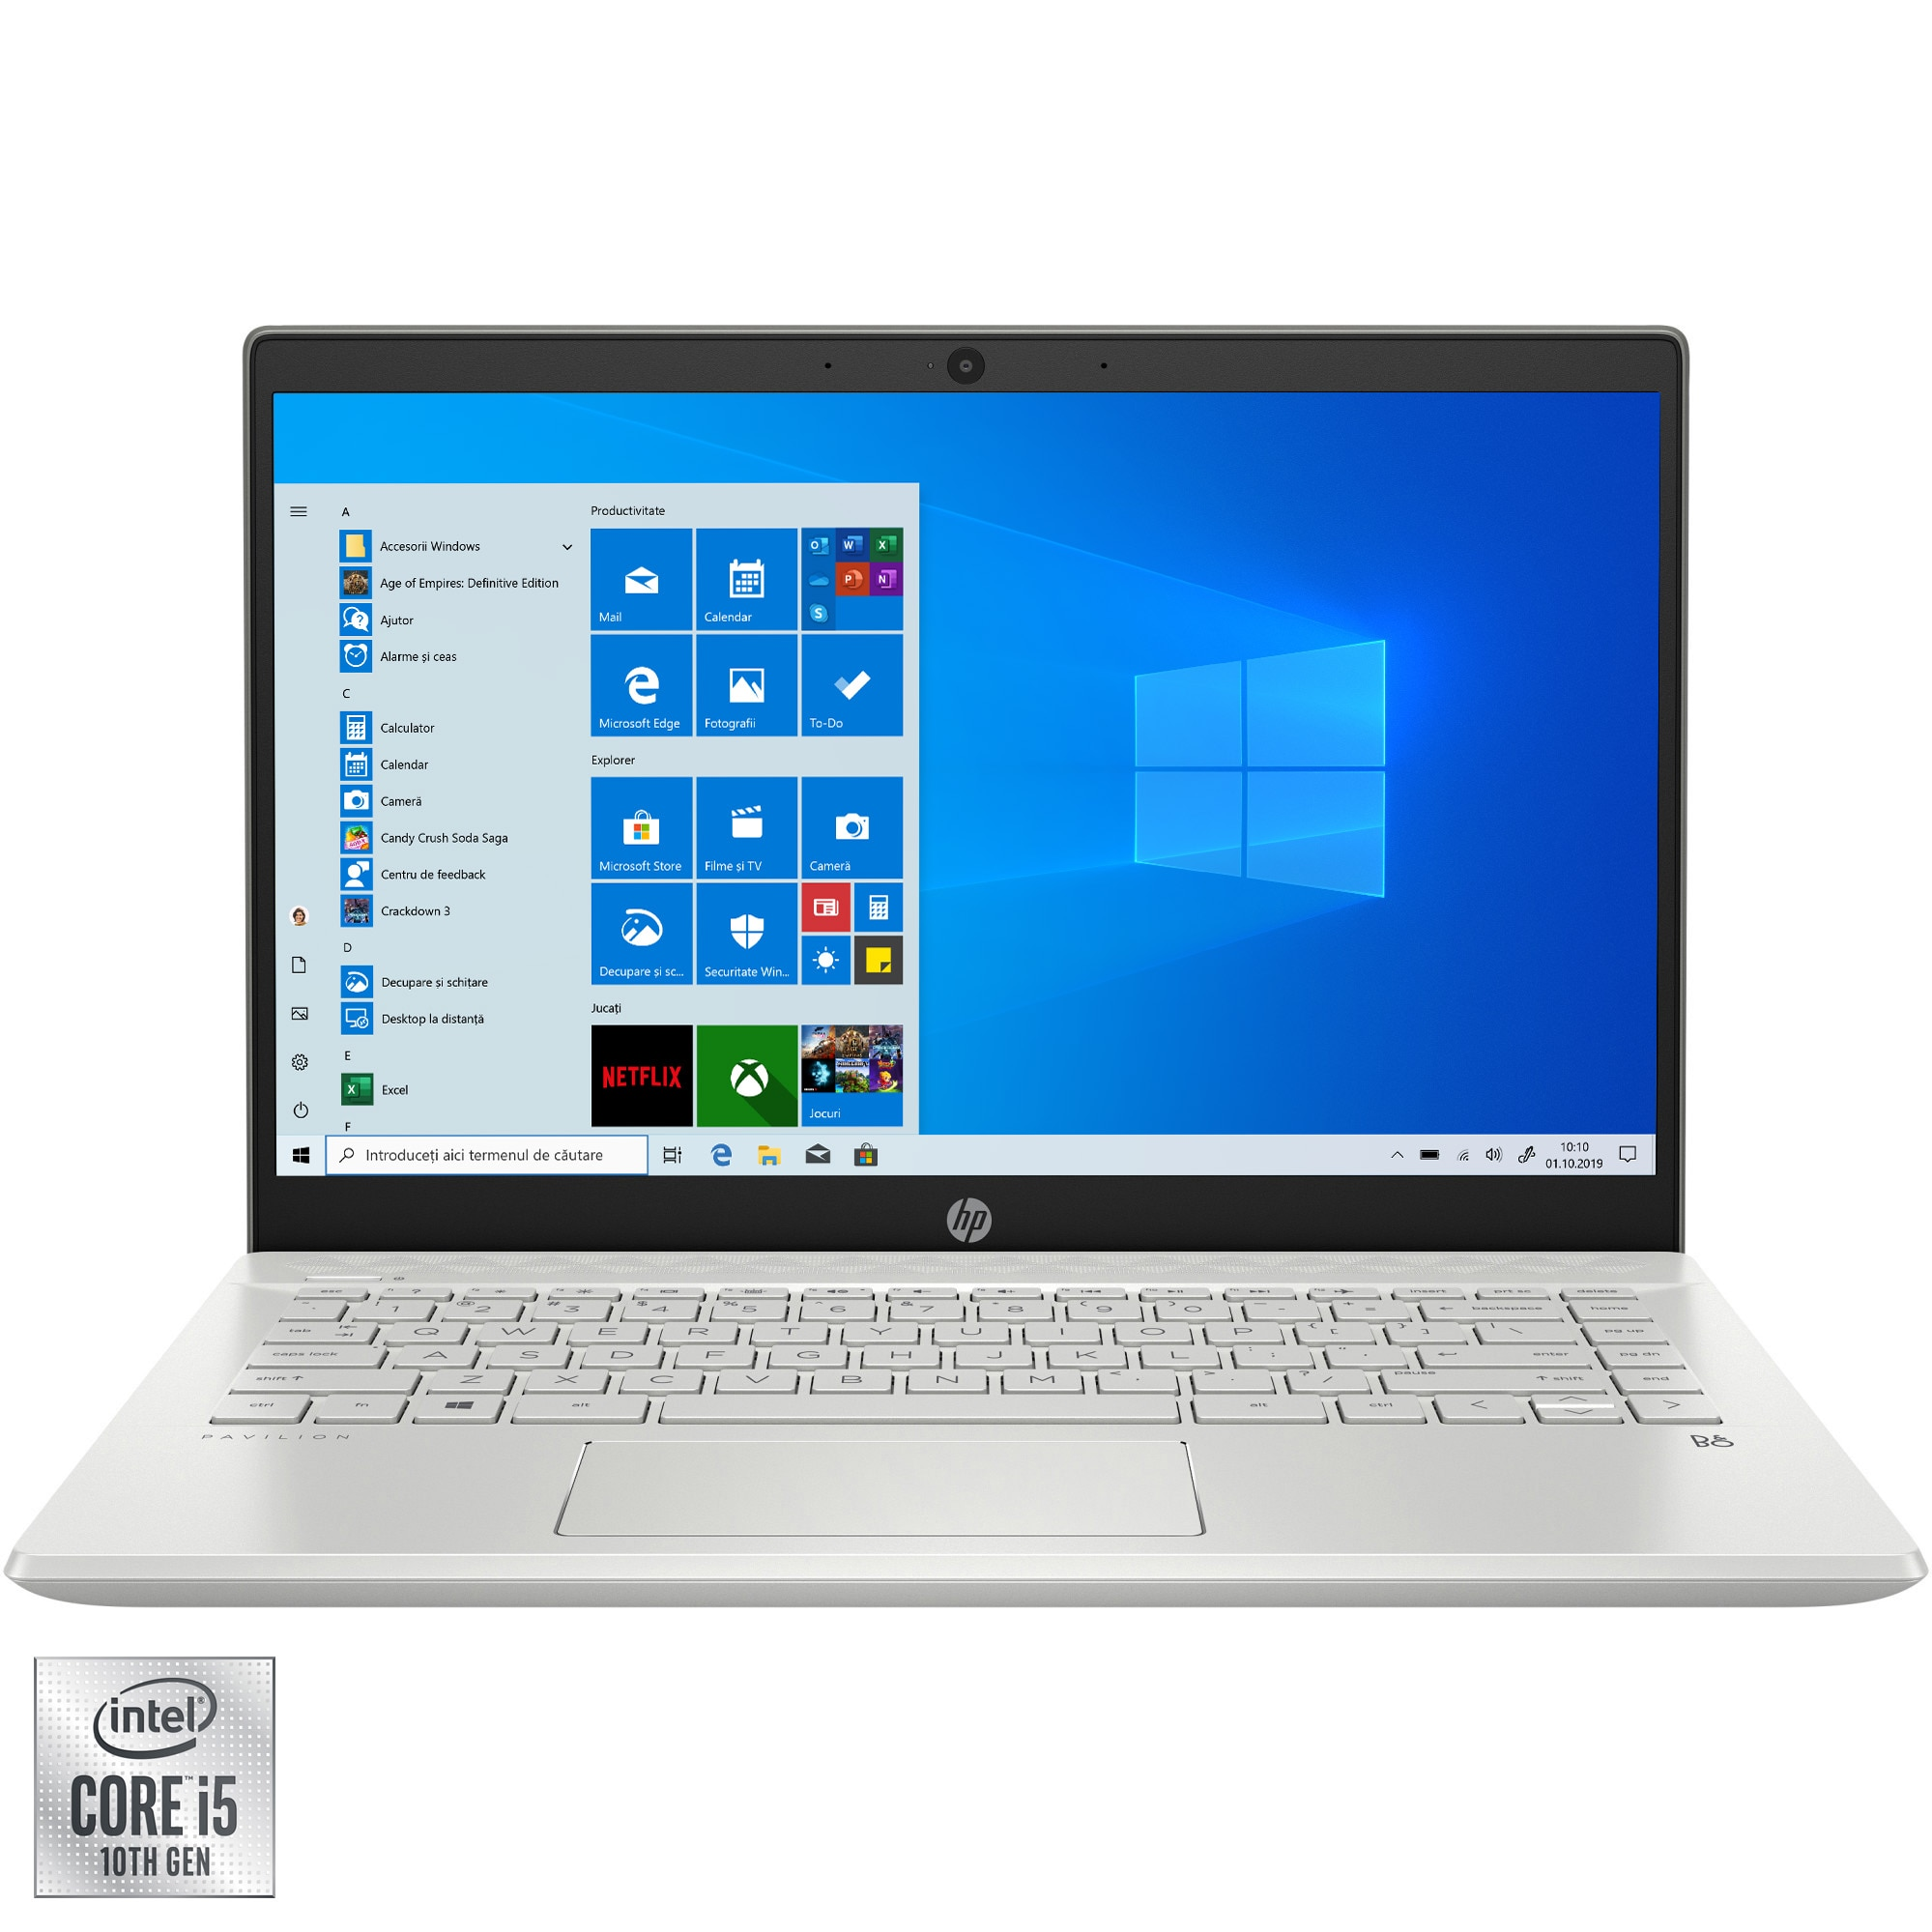 "Fotografie Laptop ultraportabil HP Pavilion 14-ce3013nq cu procesor Intel Core i5-1035G1 pana la 3.60 GHz, 14"", Full HD, 16GB, 512GB SSD, Nvidia GeForce MX130 2GB, Windows 10 Home, Mineral silver"